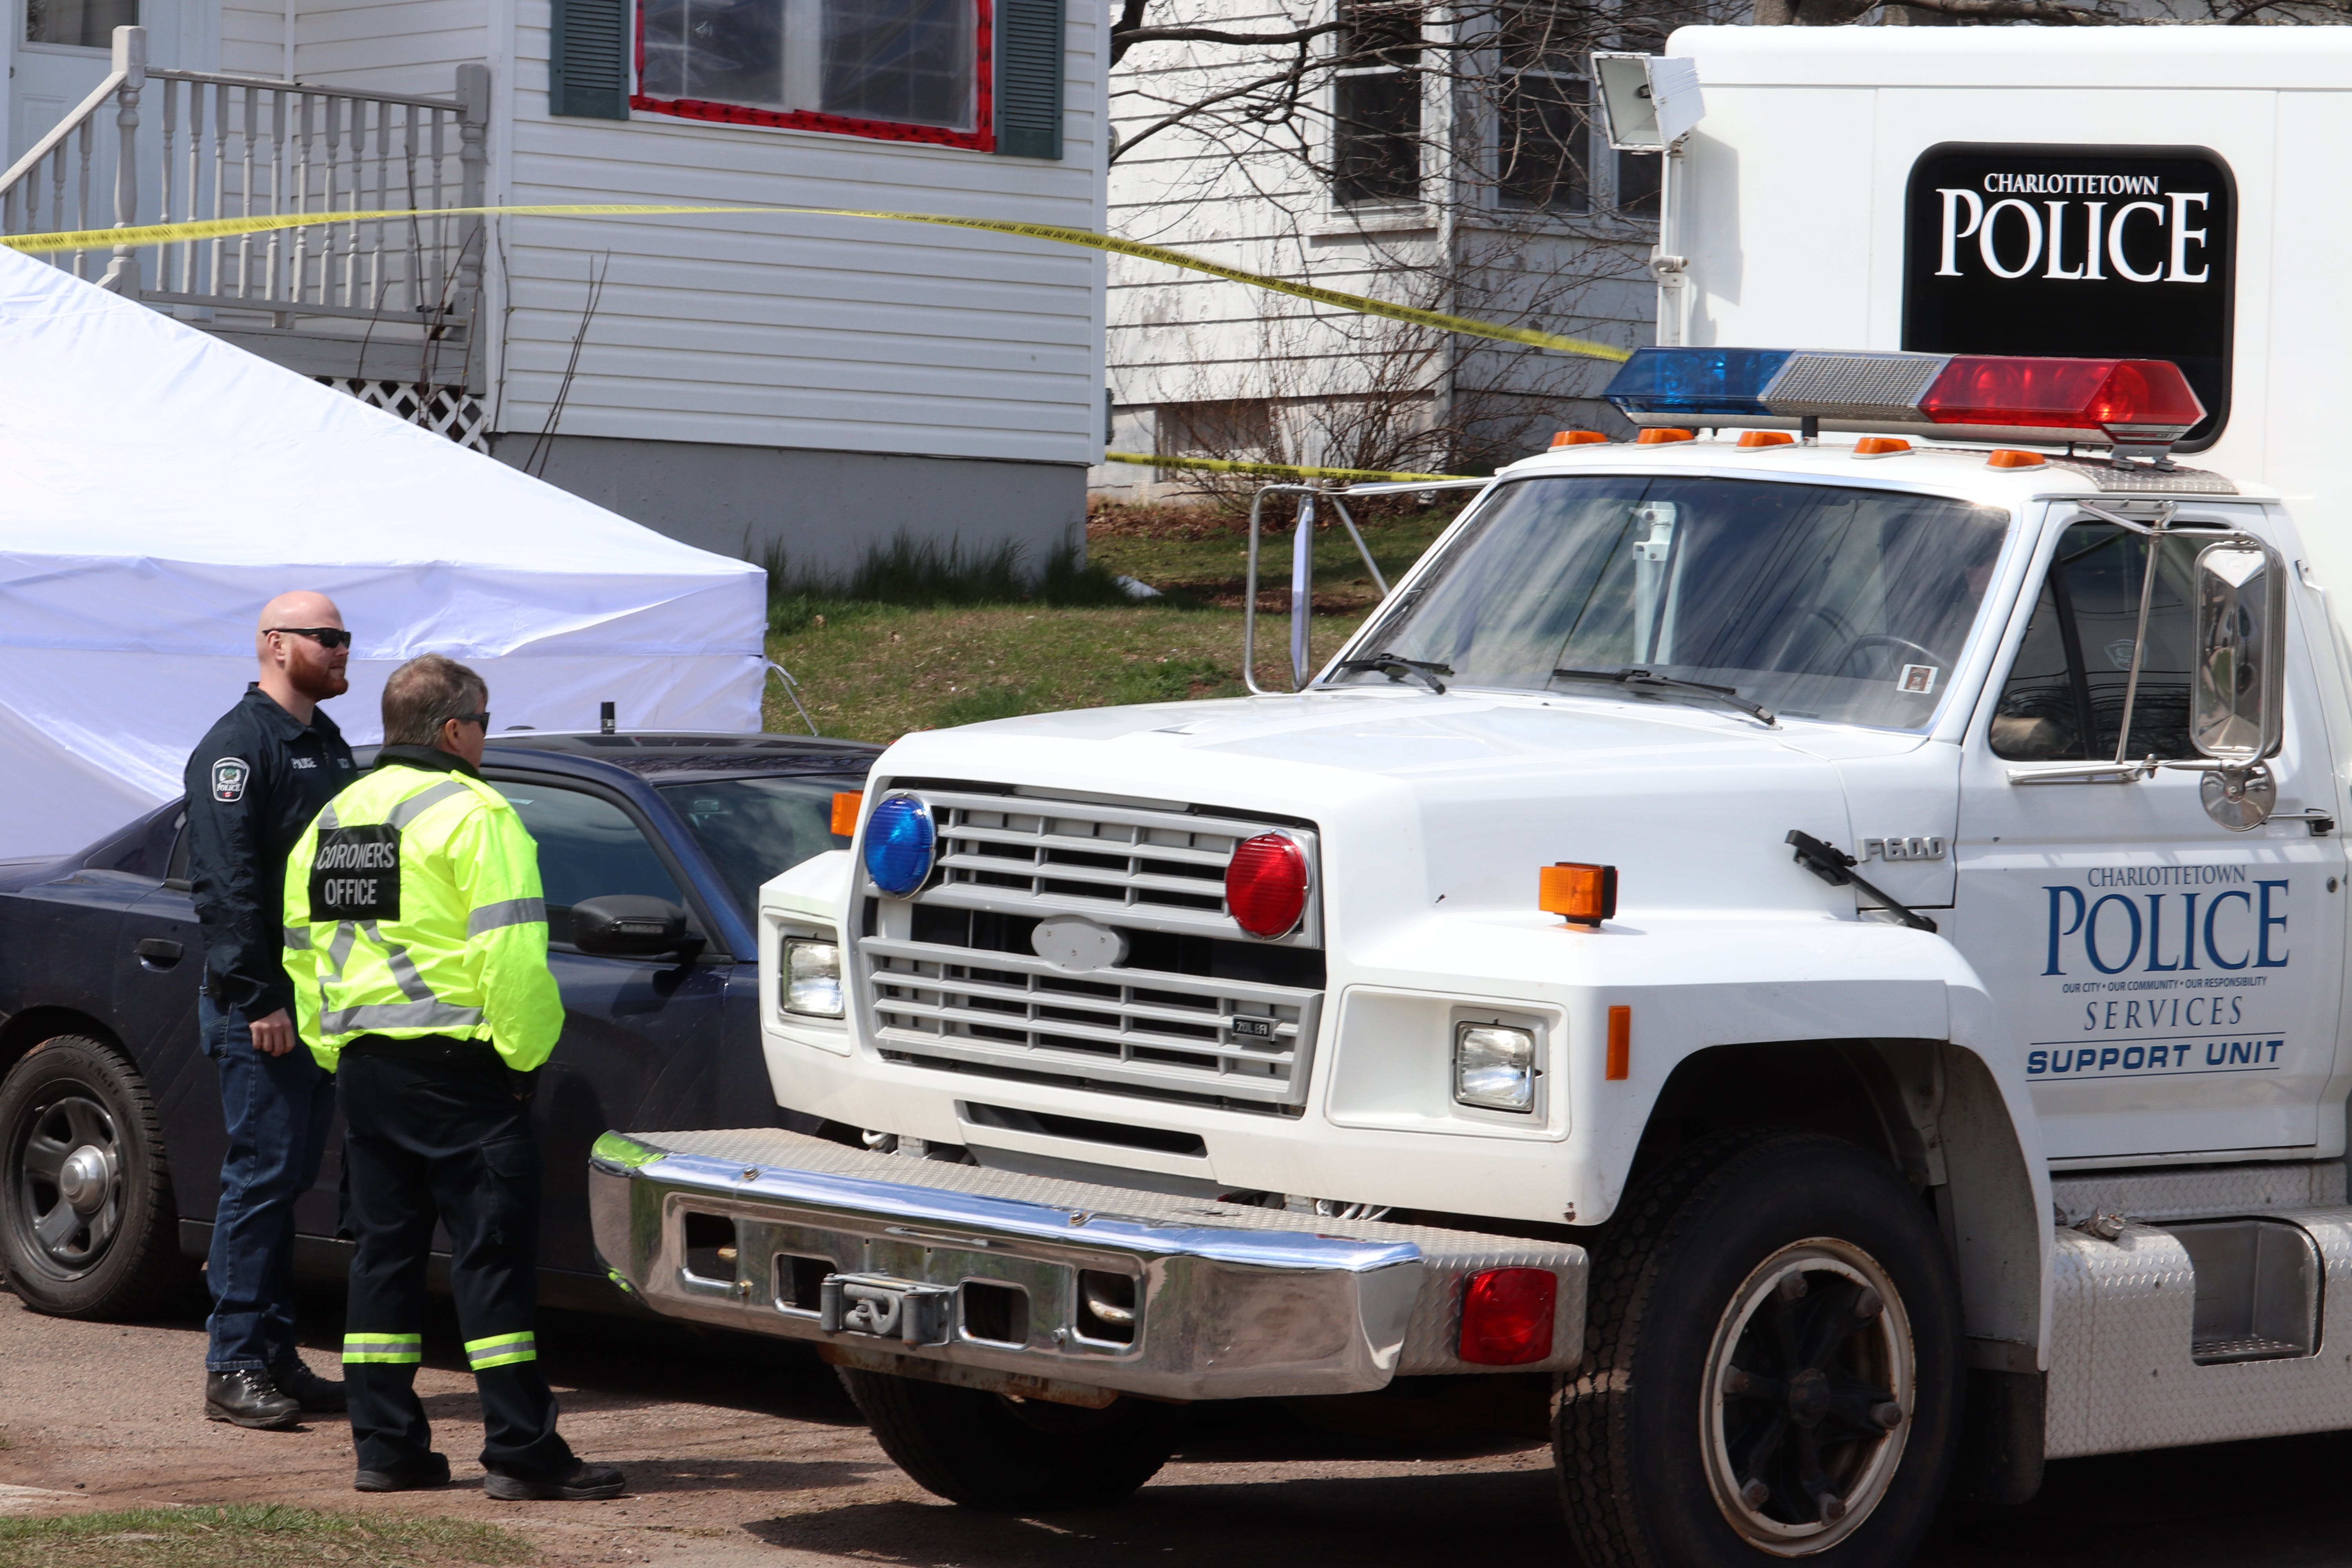 A coroner's vehicle was present at the scene of a suspicious death in Charlottetown on Sunday afternoon along with a forensics unit.